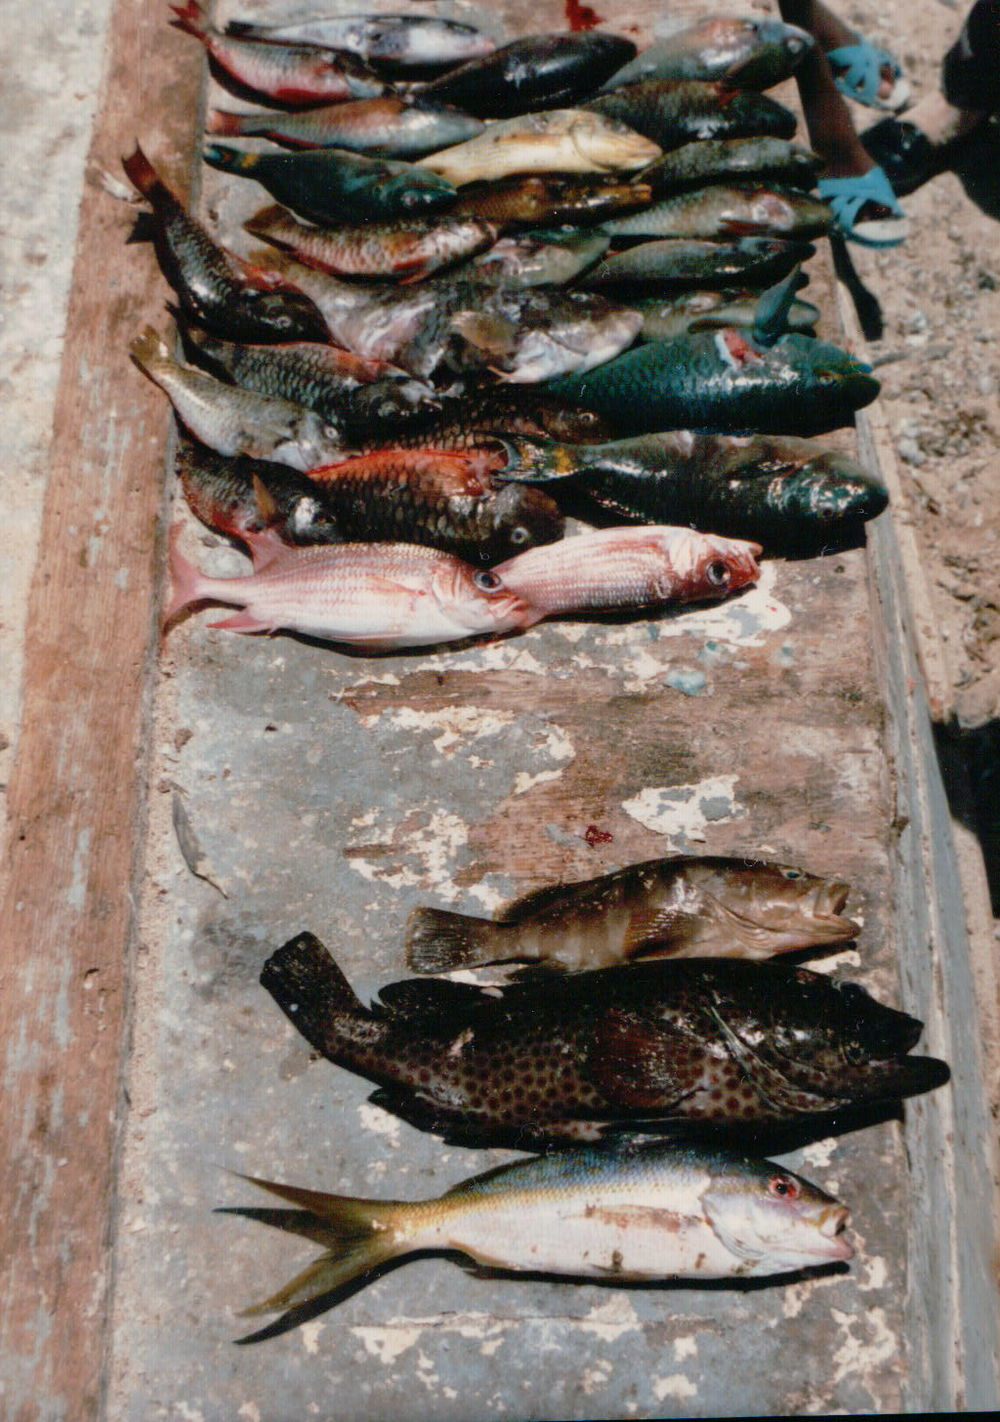 Fish catch, Buen Hombre, Dominican Republic  (Photography by Richard W. Stoffle)